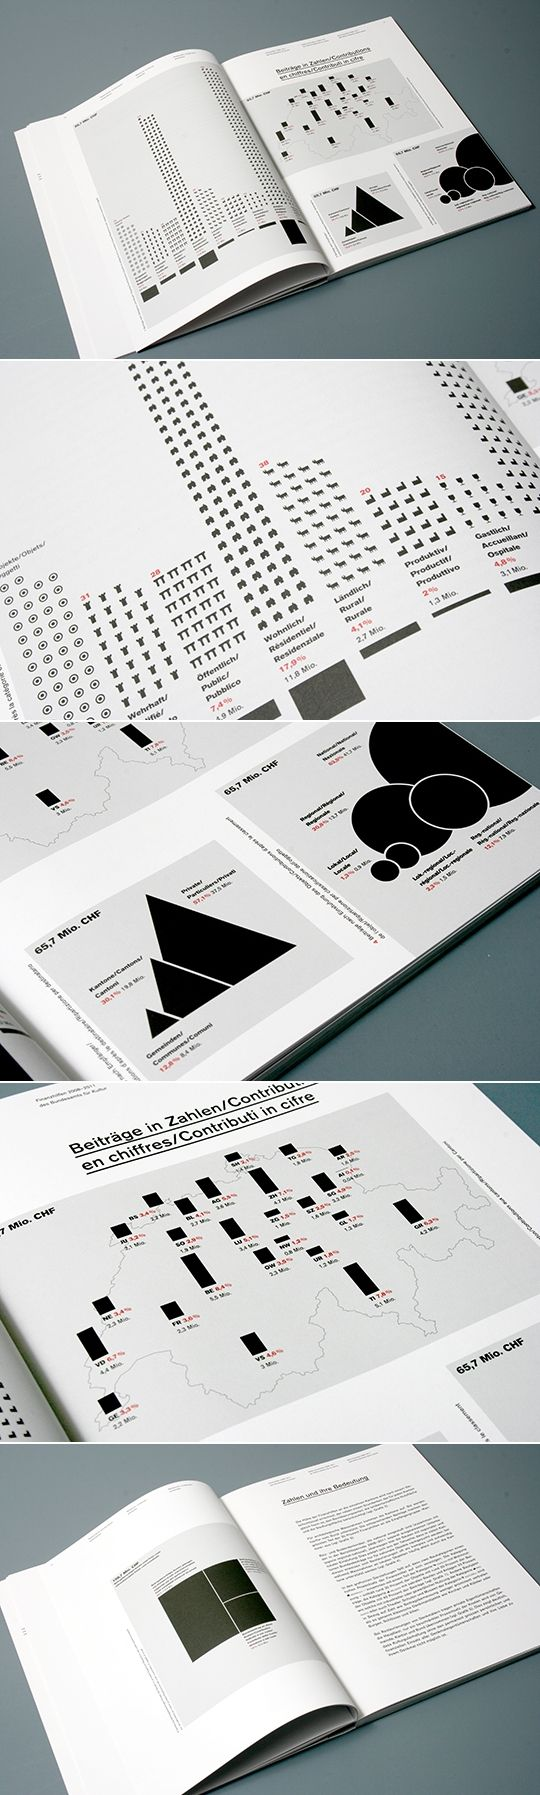 #information #design #infographic